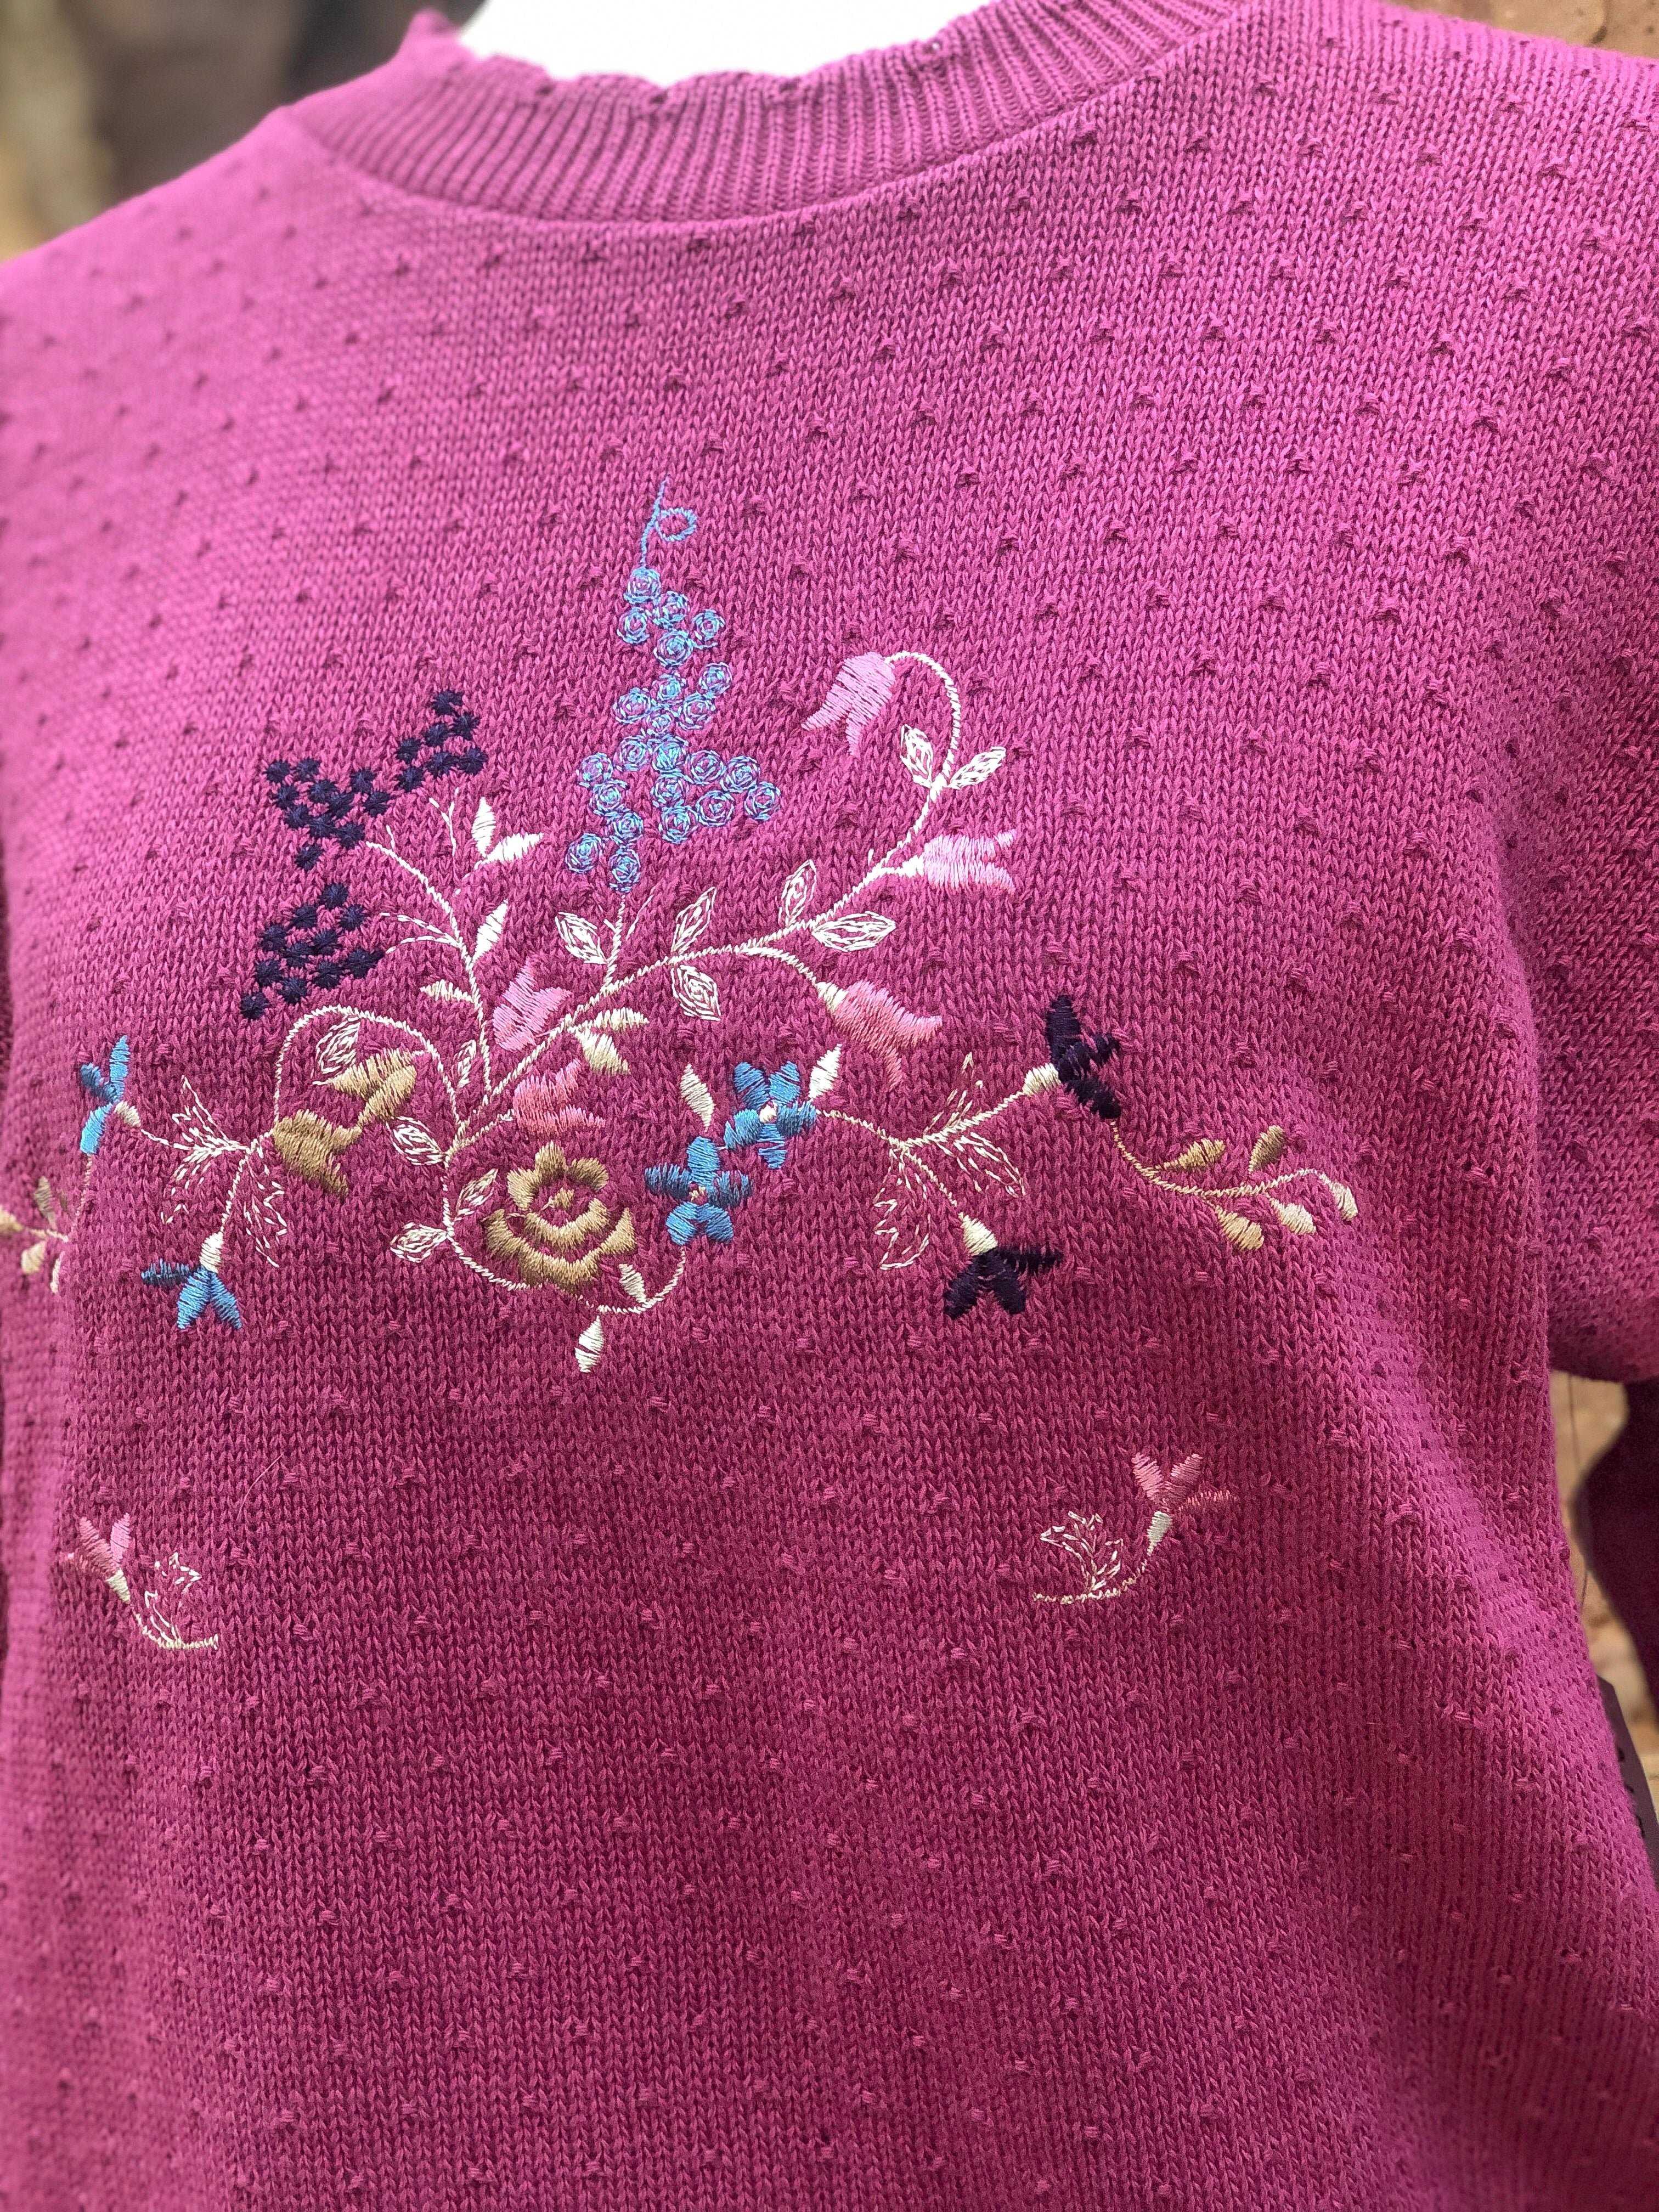 Vintage 80s Pink Embroidered Sweater / S-M